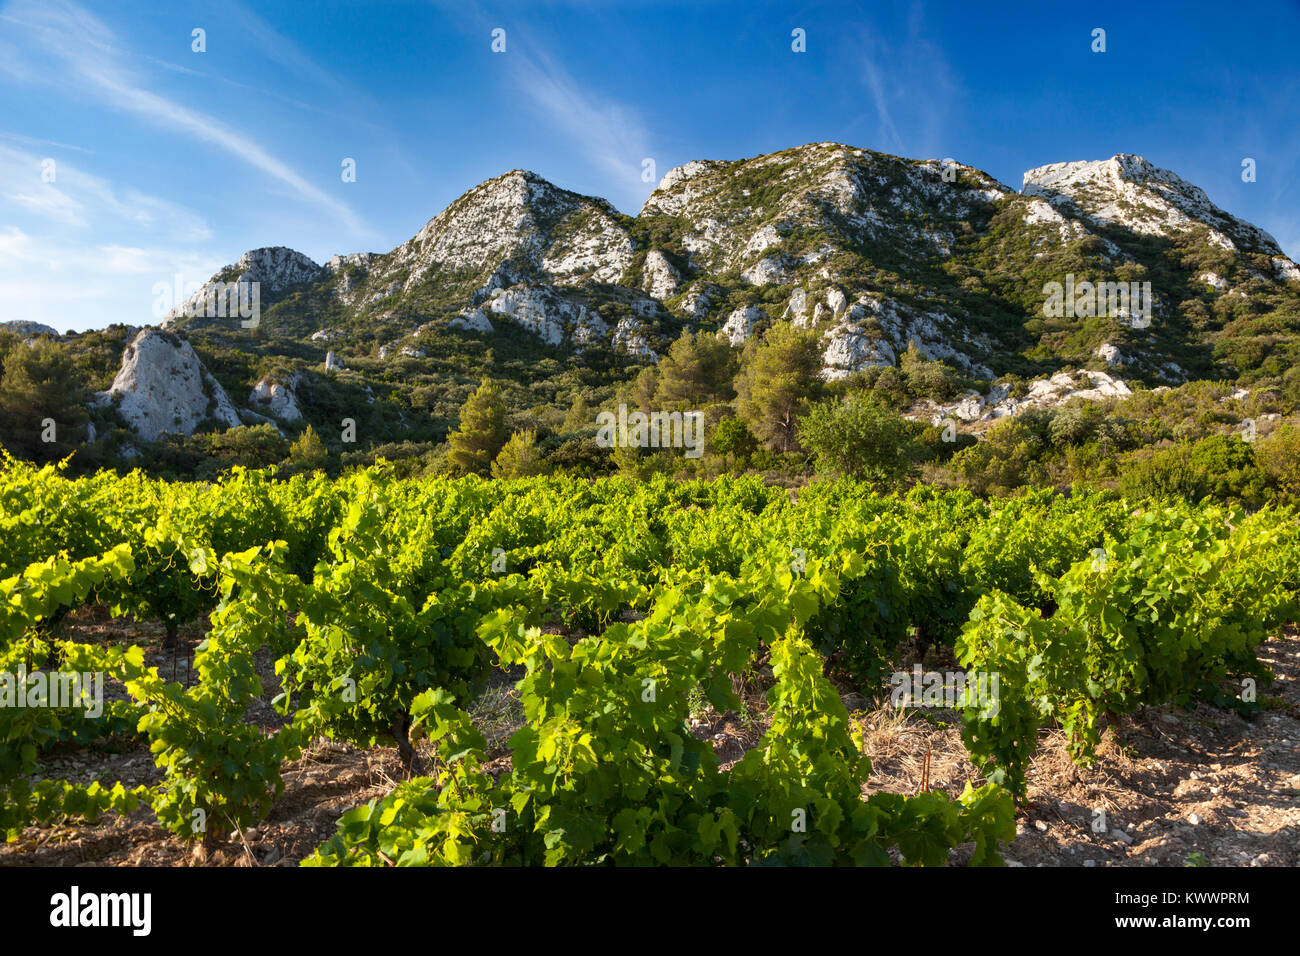 Mountains of the Alpilles overlooking the vineyards of Chateau Romanin near Saint Remy de-Provence, France - Stock Image